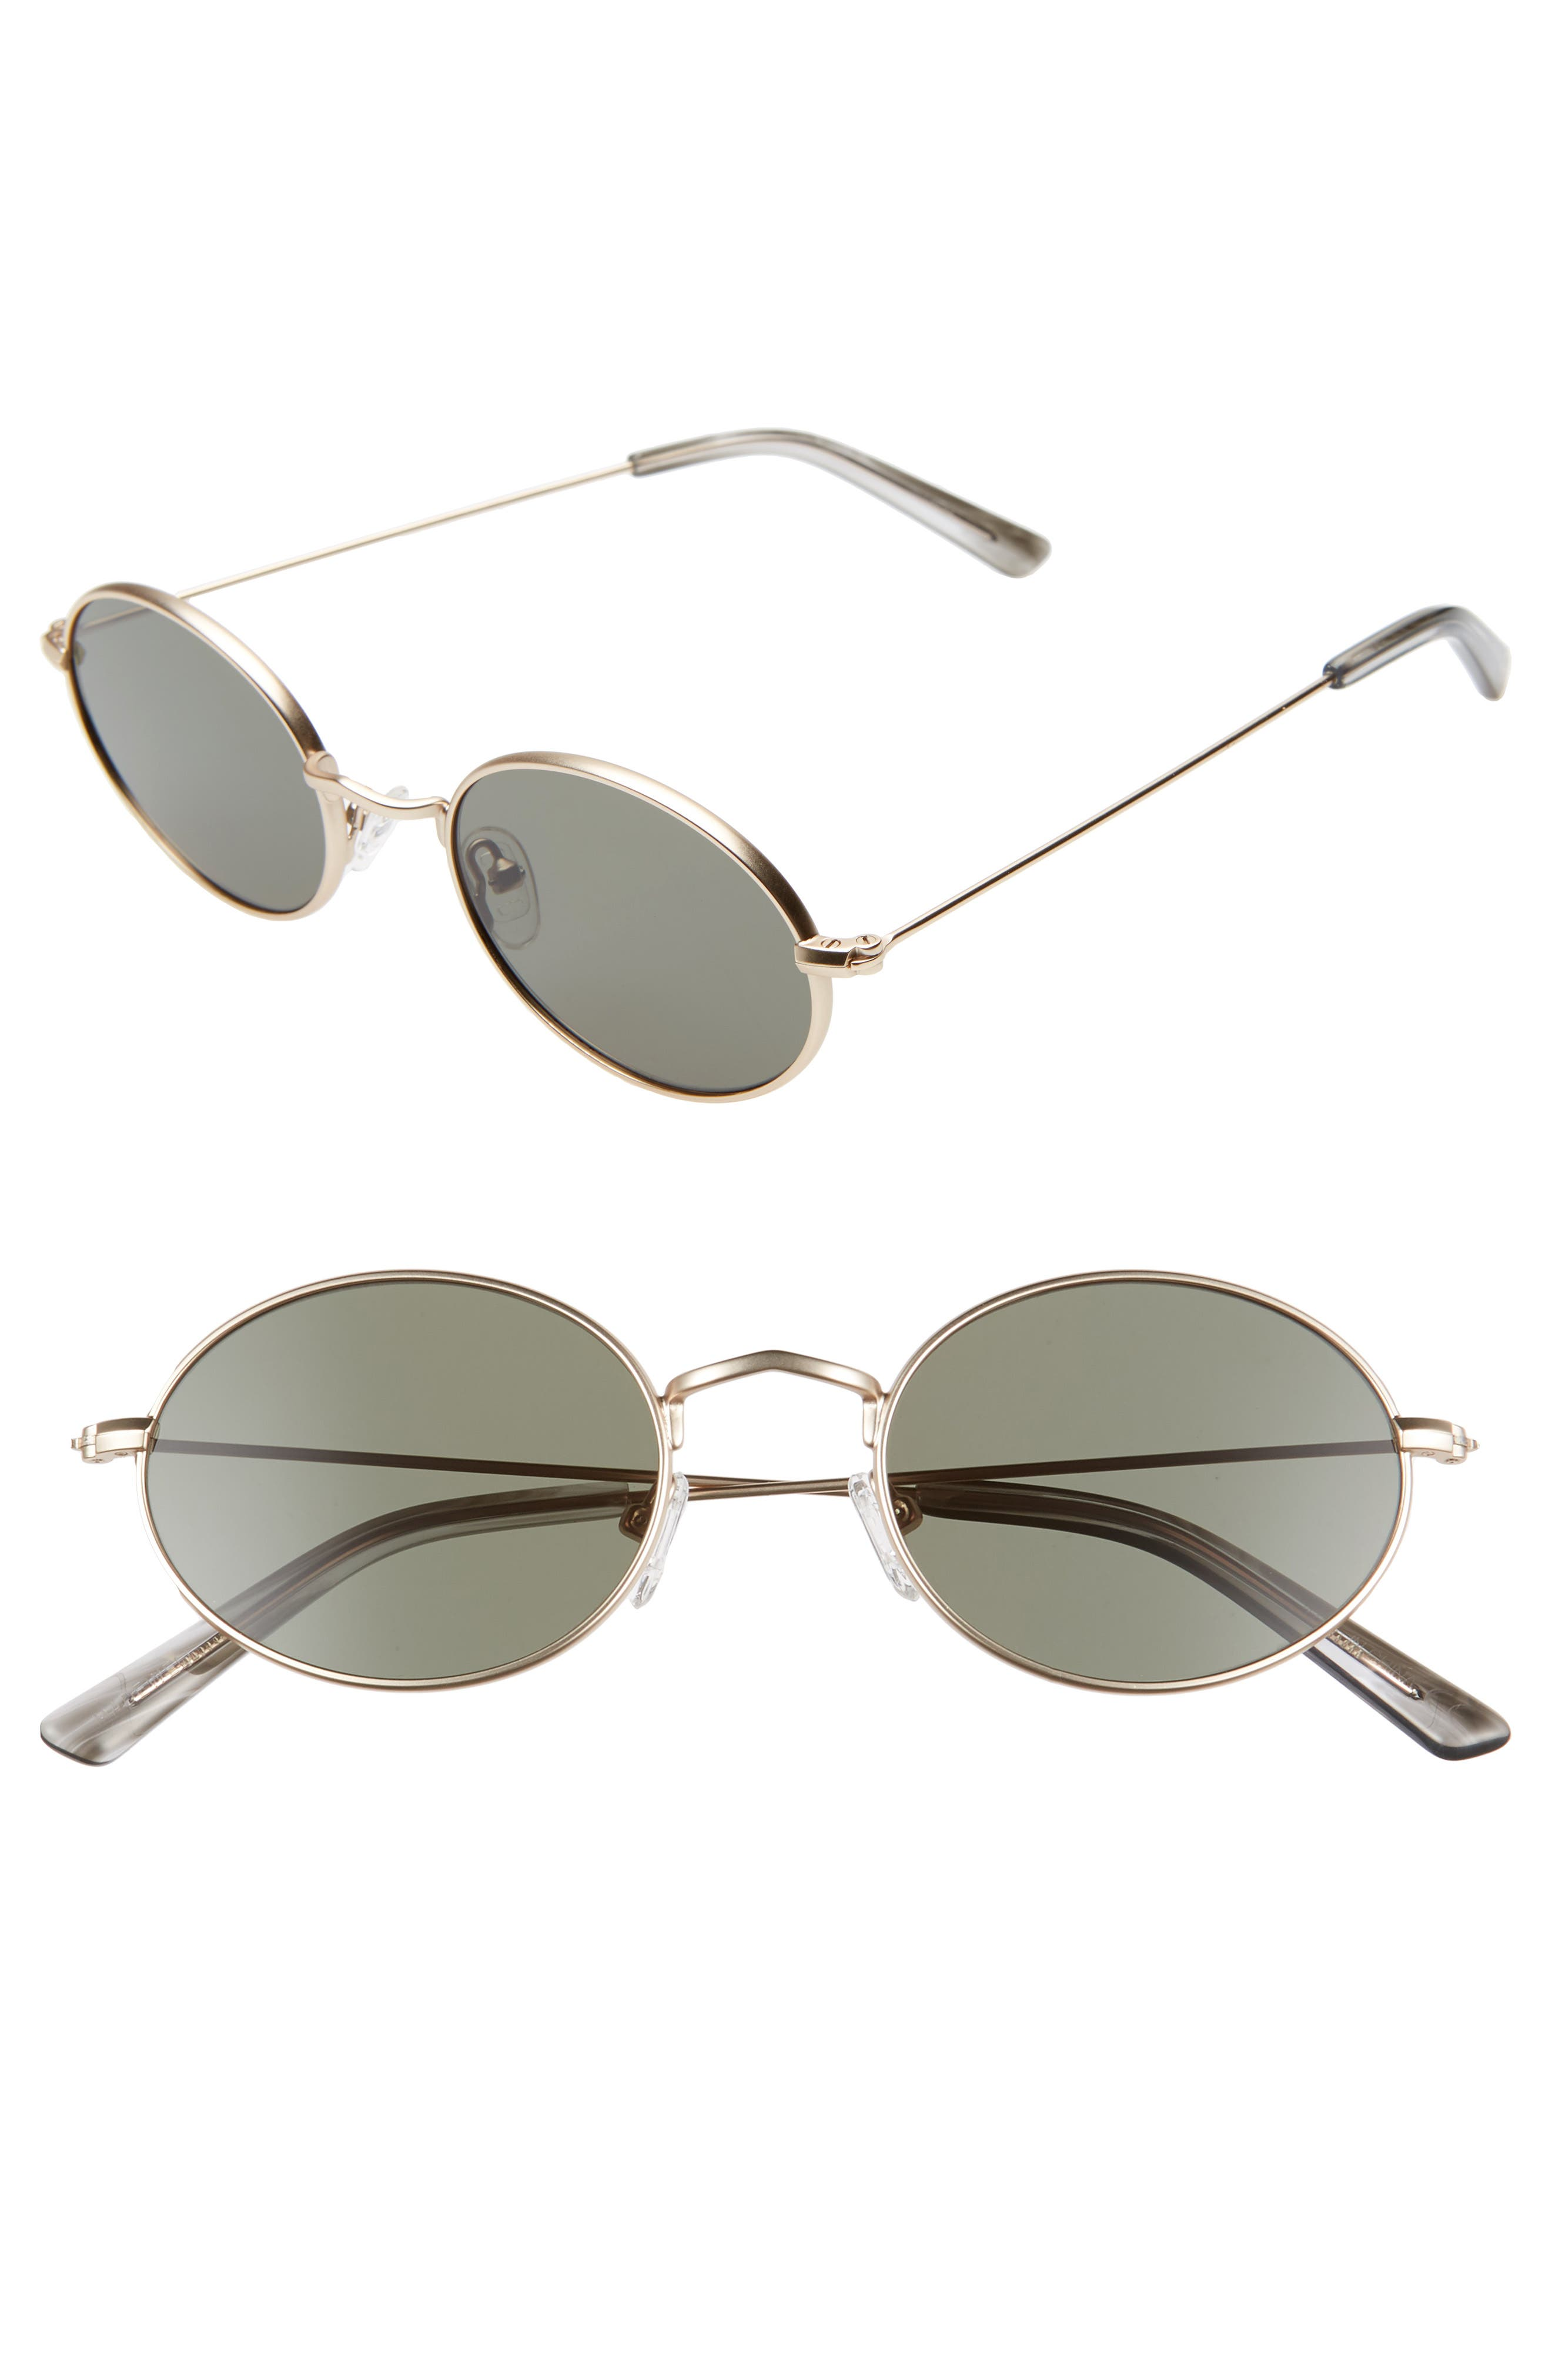 Madewell 50Mm Wire Rimmed Round Sunglasses - Gold/ Green